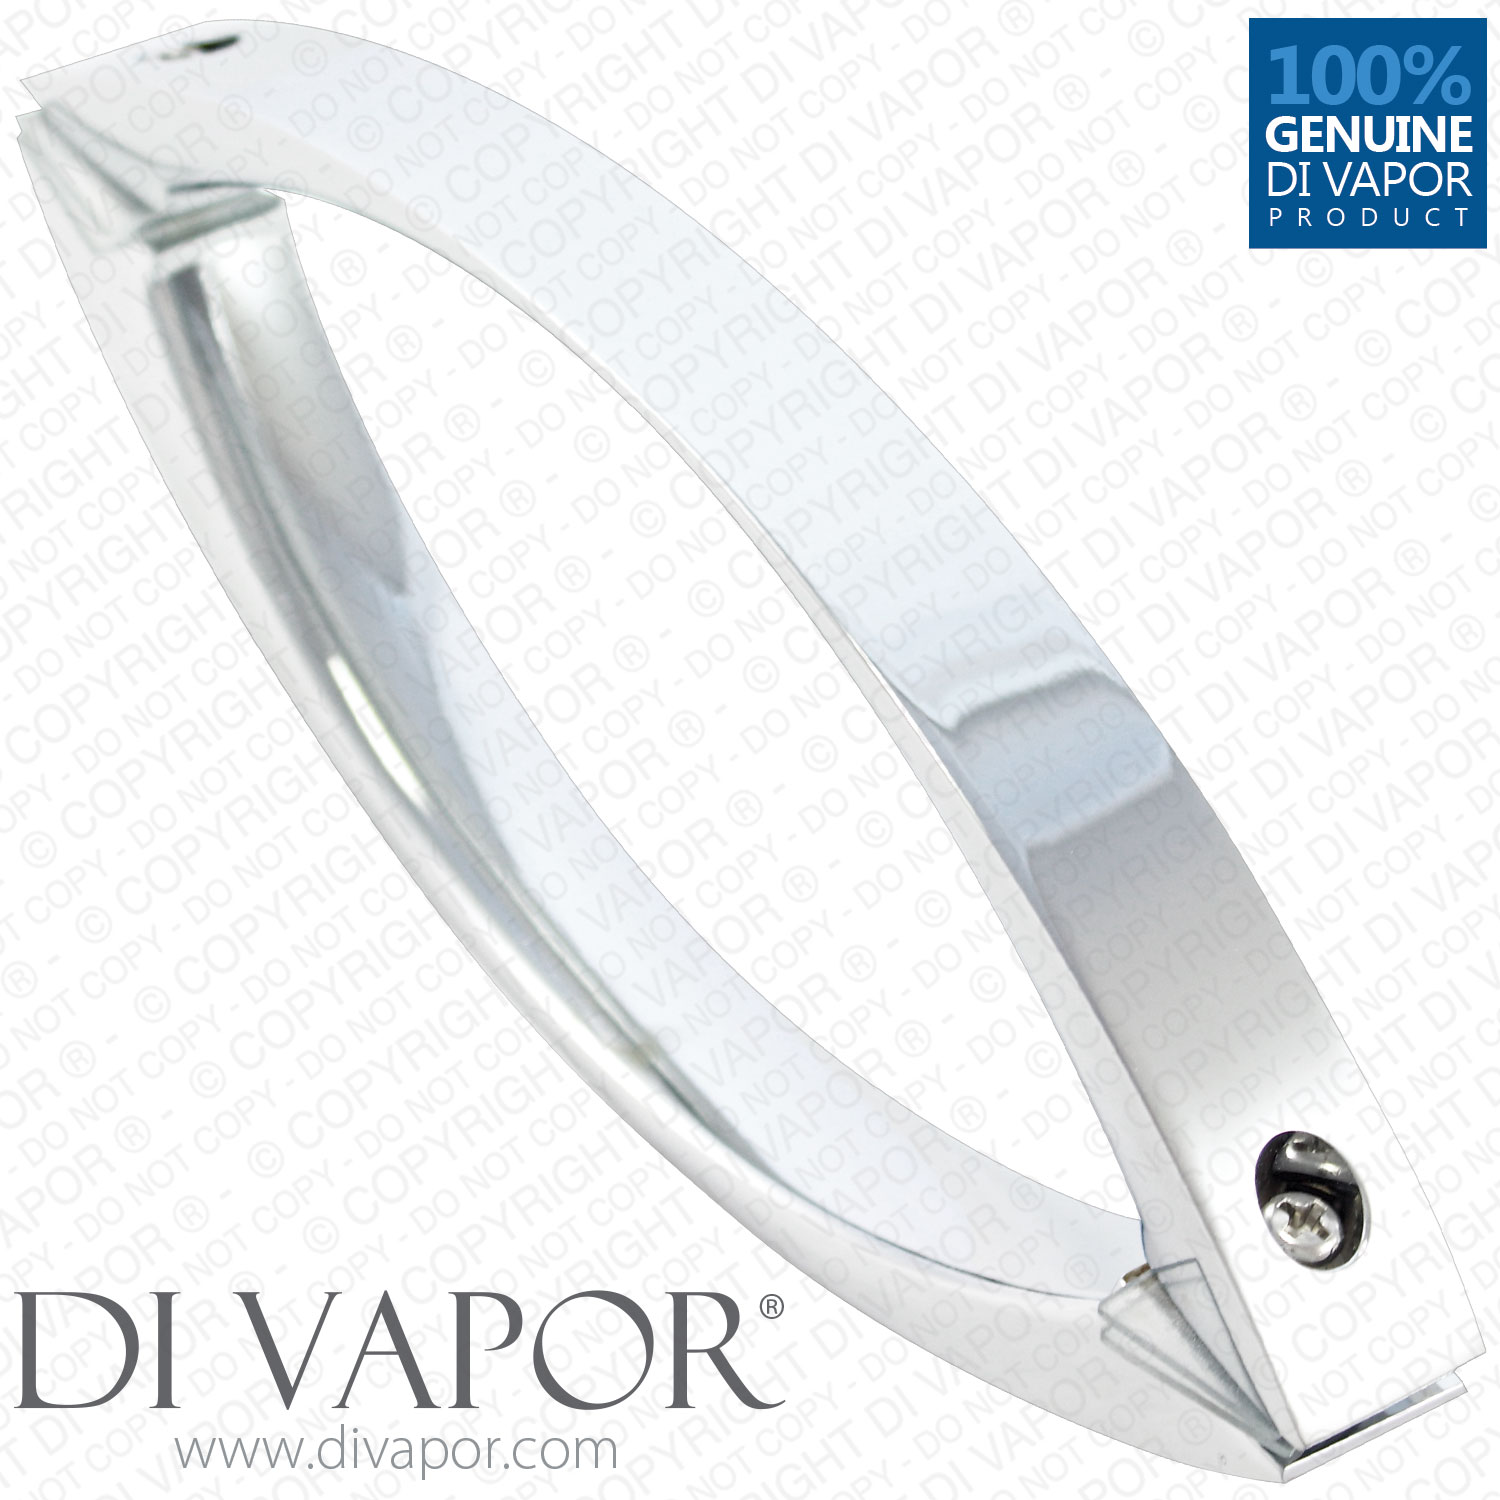 Di Vapor R 145mm Shower Door Handles 14 5cm Hole To